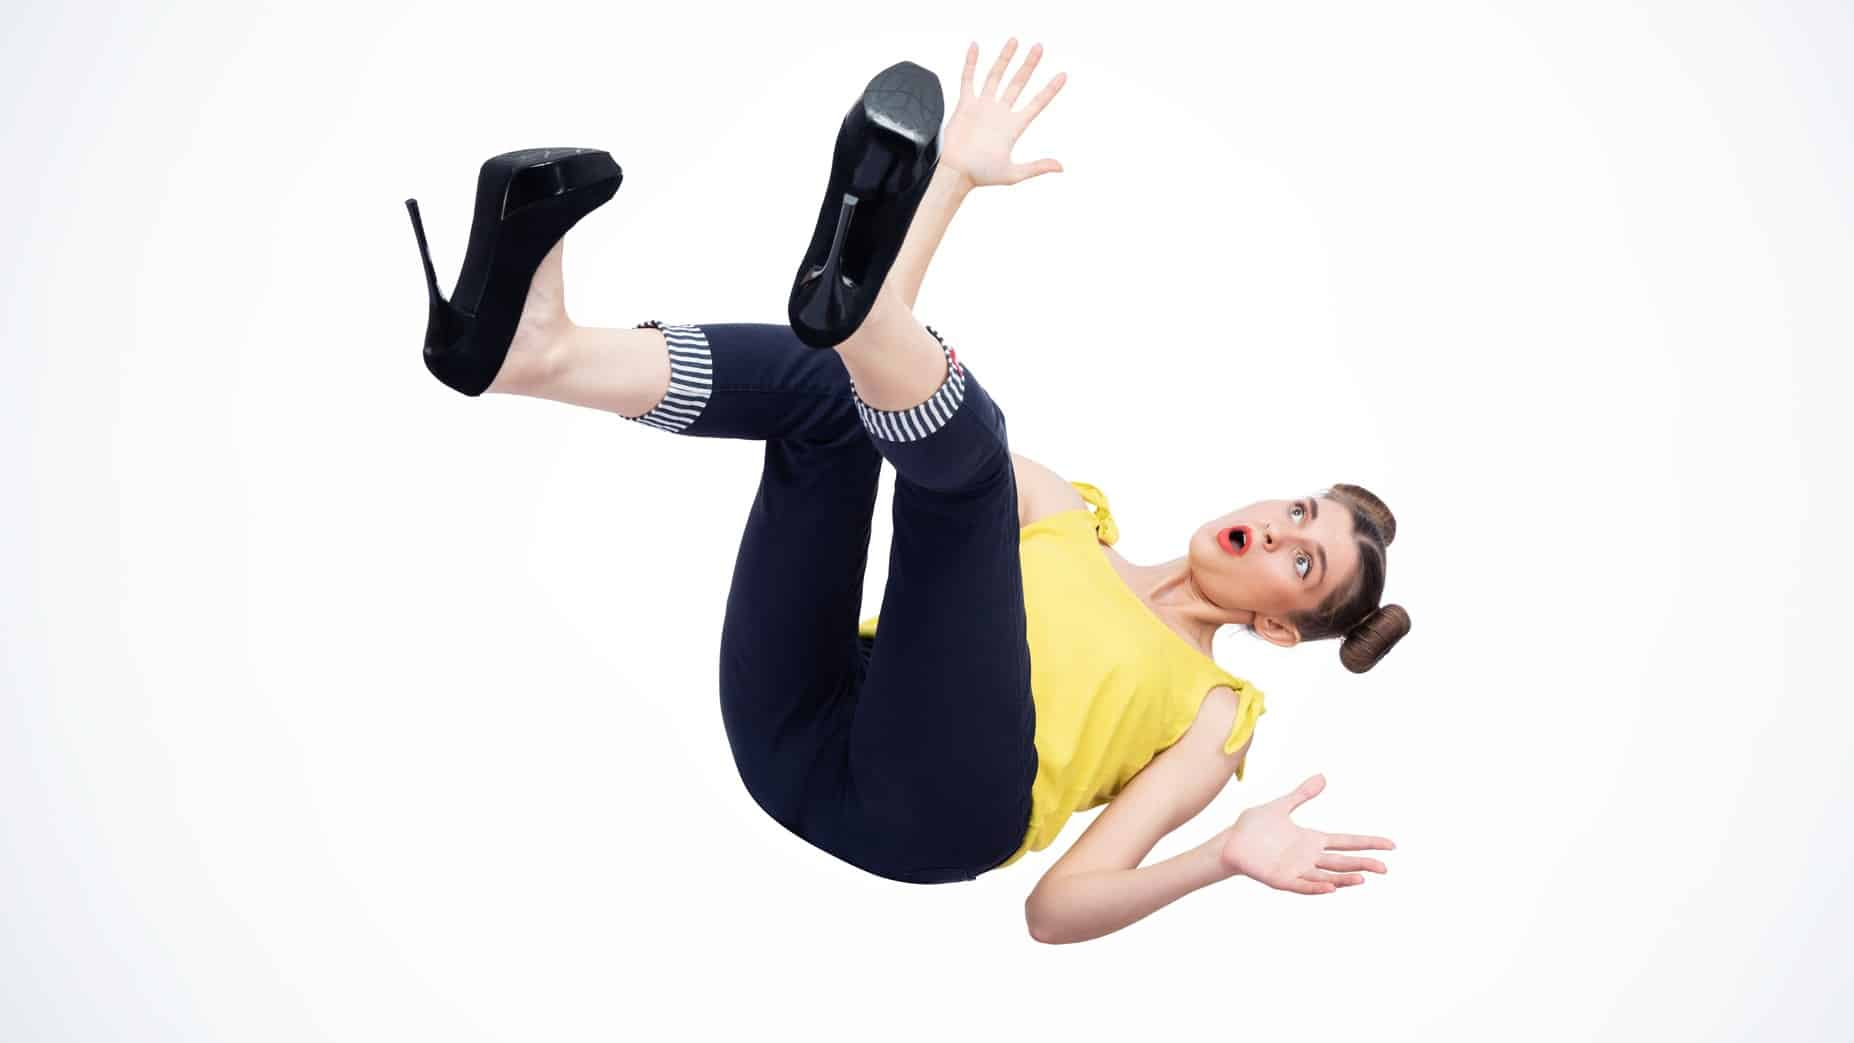 falling asx share price represented by woman falling through mid air